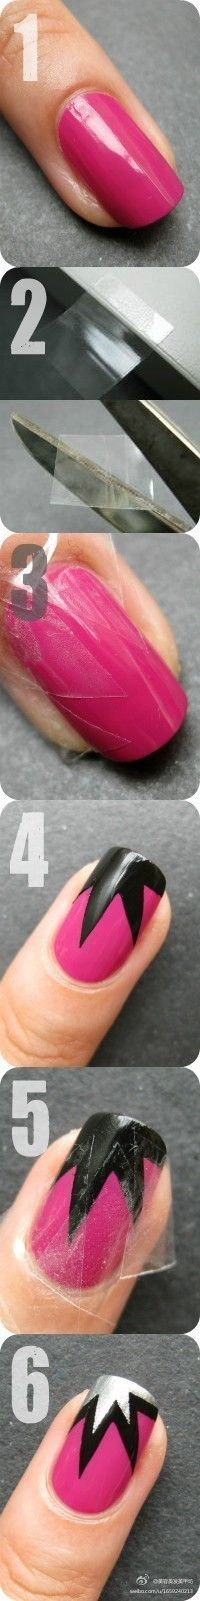 great trick for nails